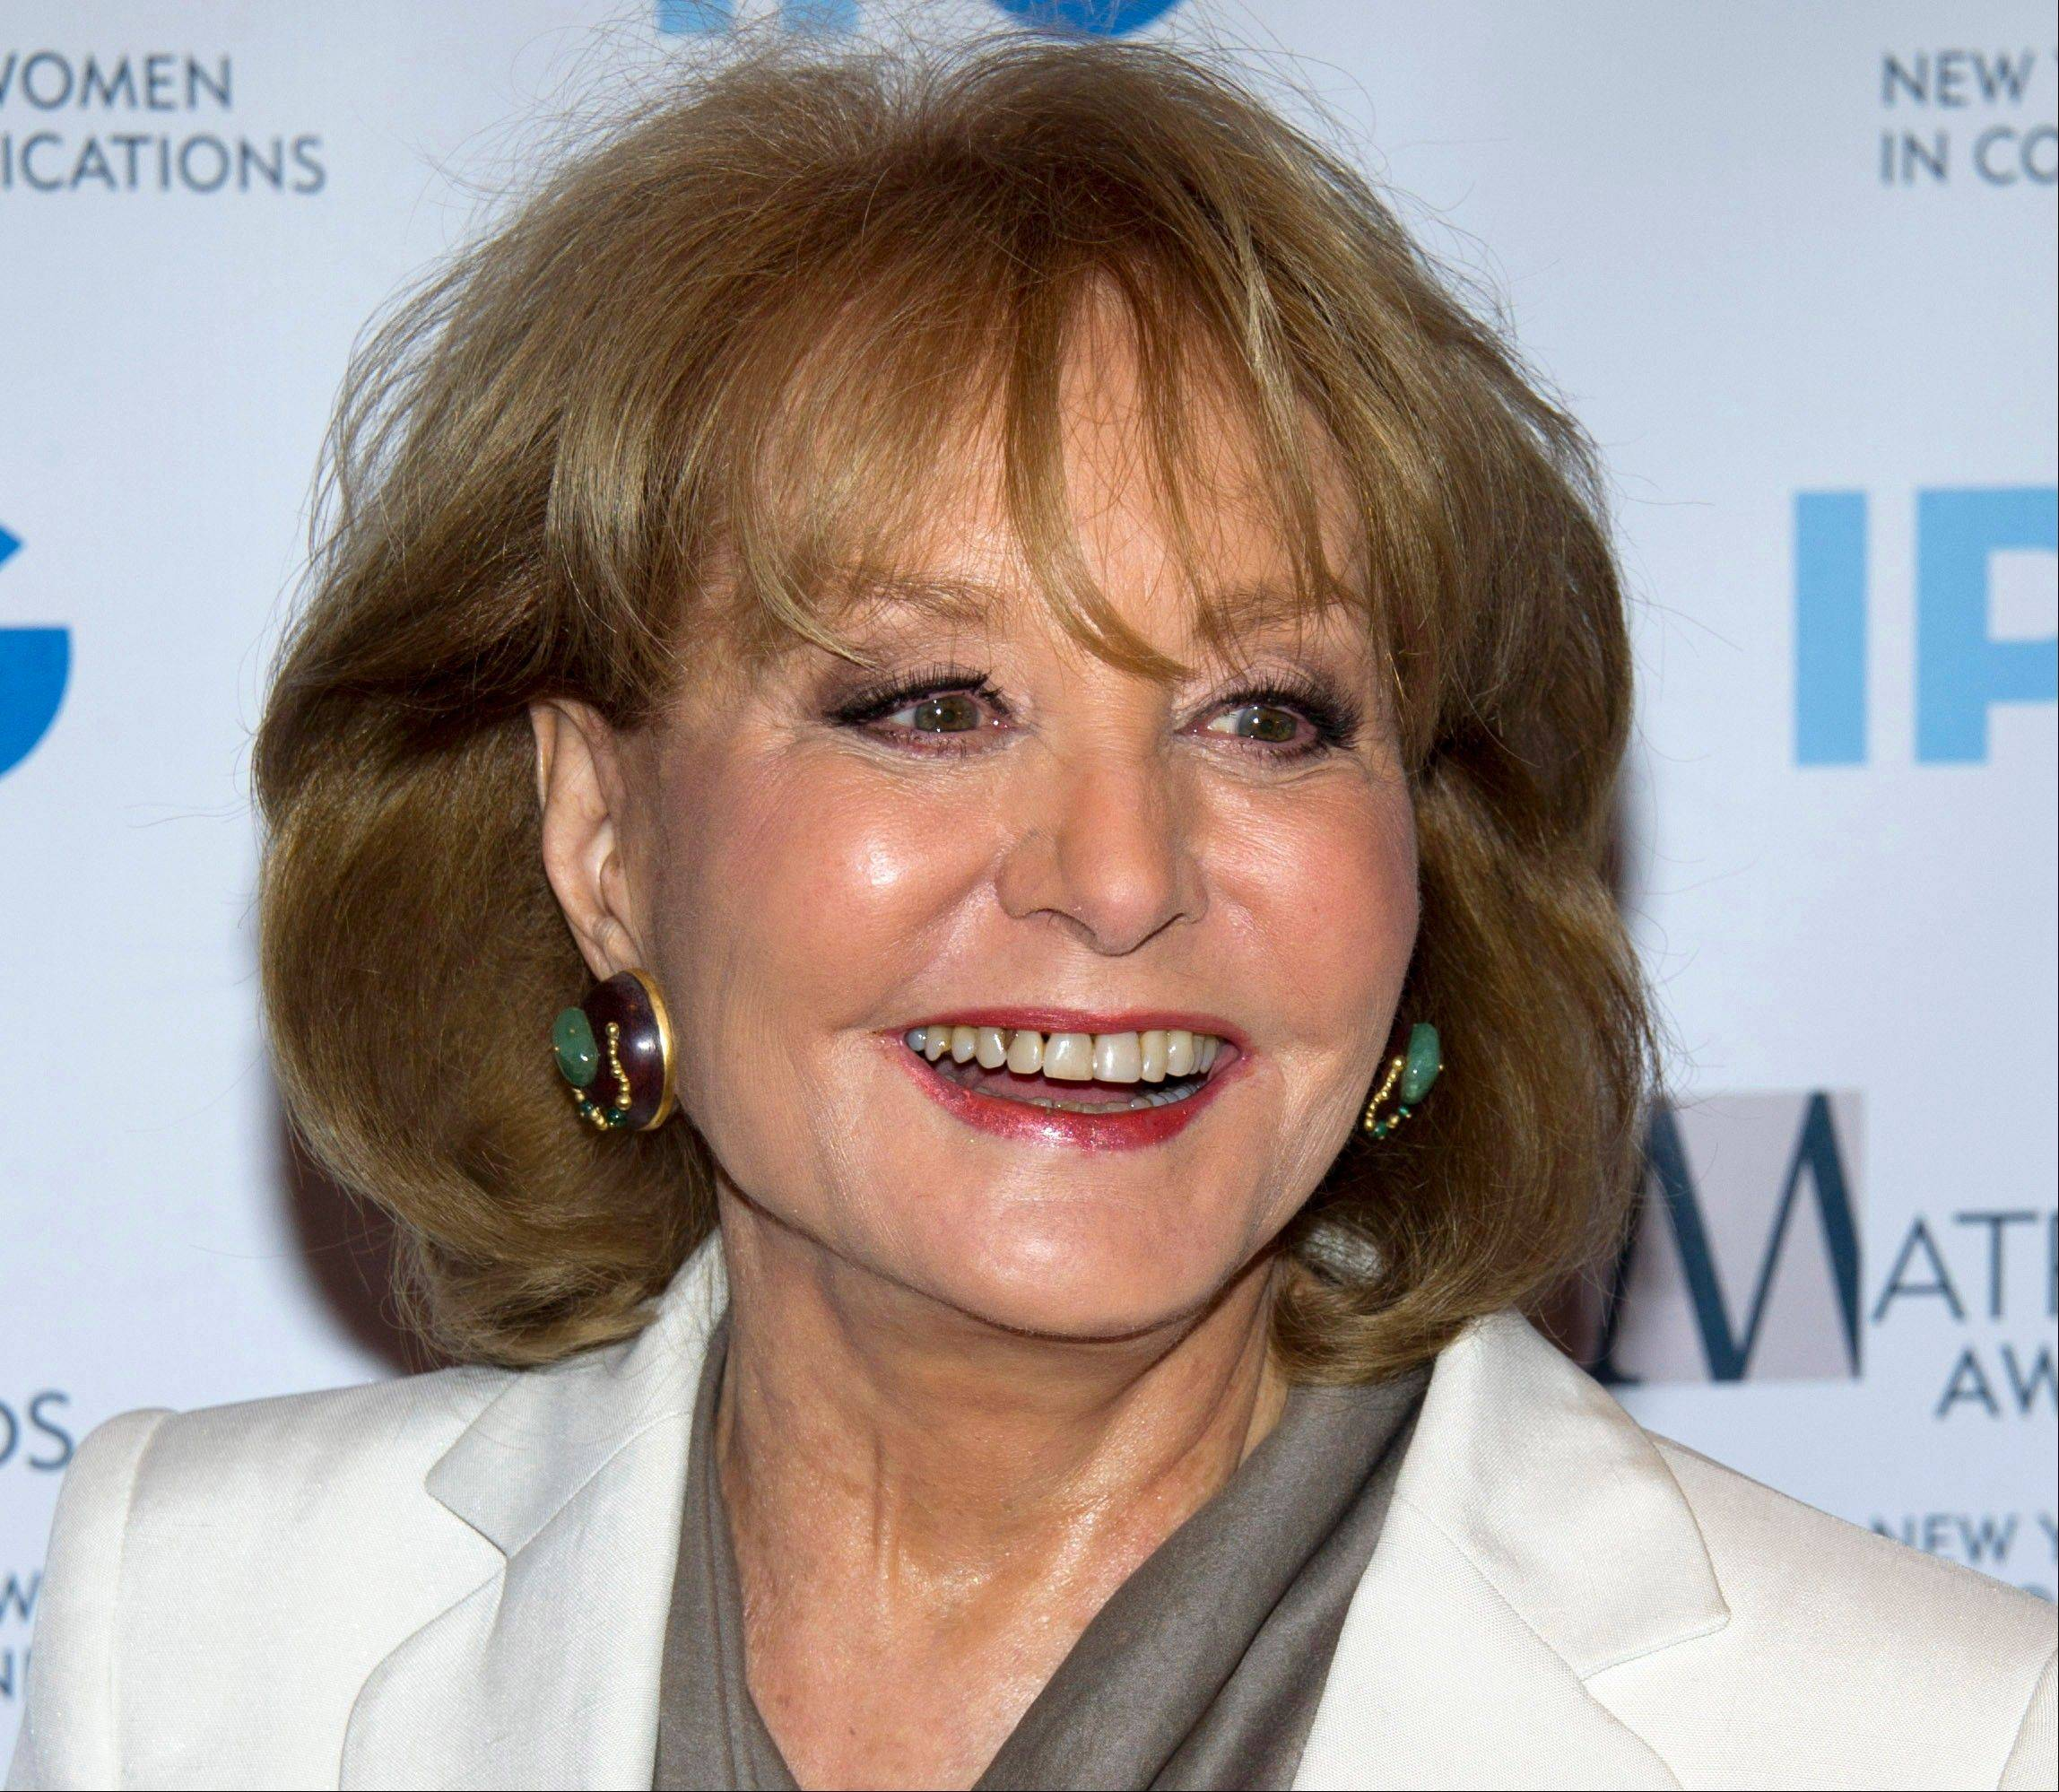 Veteran ABC newswoman Barbara Walters has announced that she will retire from TV journalism during the summer of 2014.